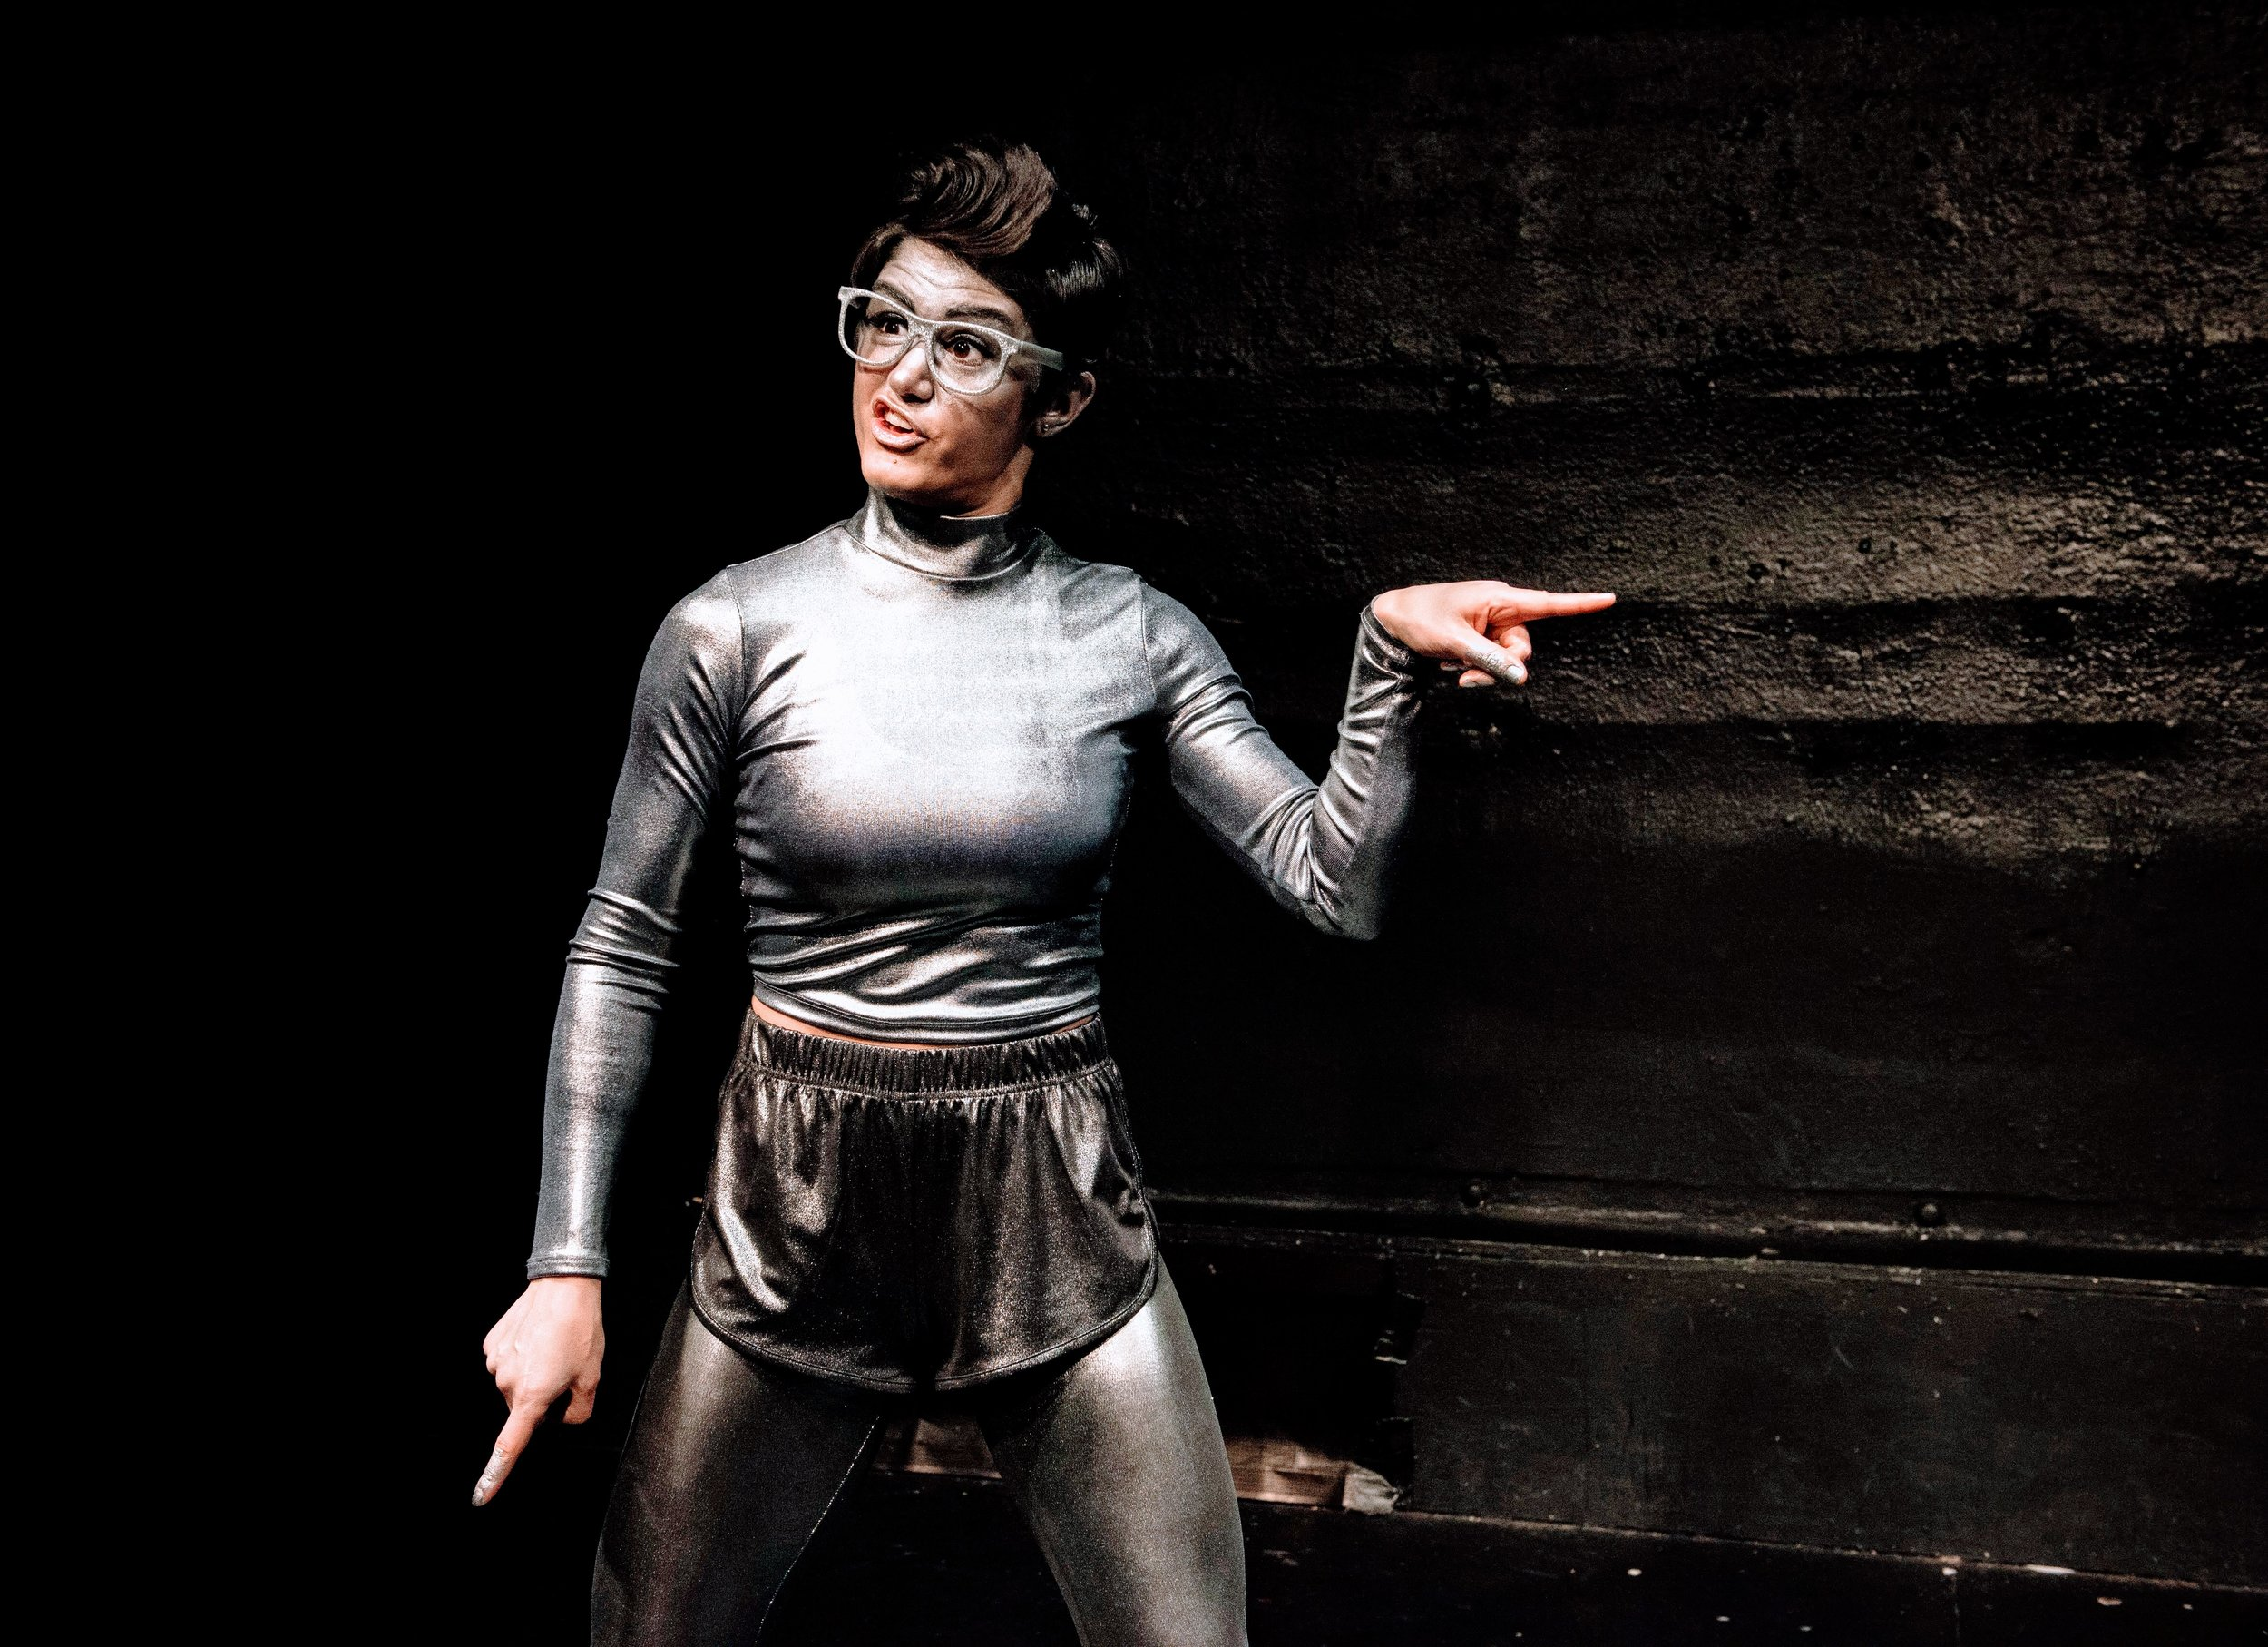 melissa mahoney is a robot, photo by marcus middleton